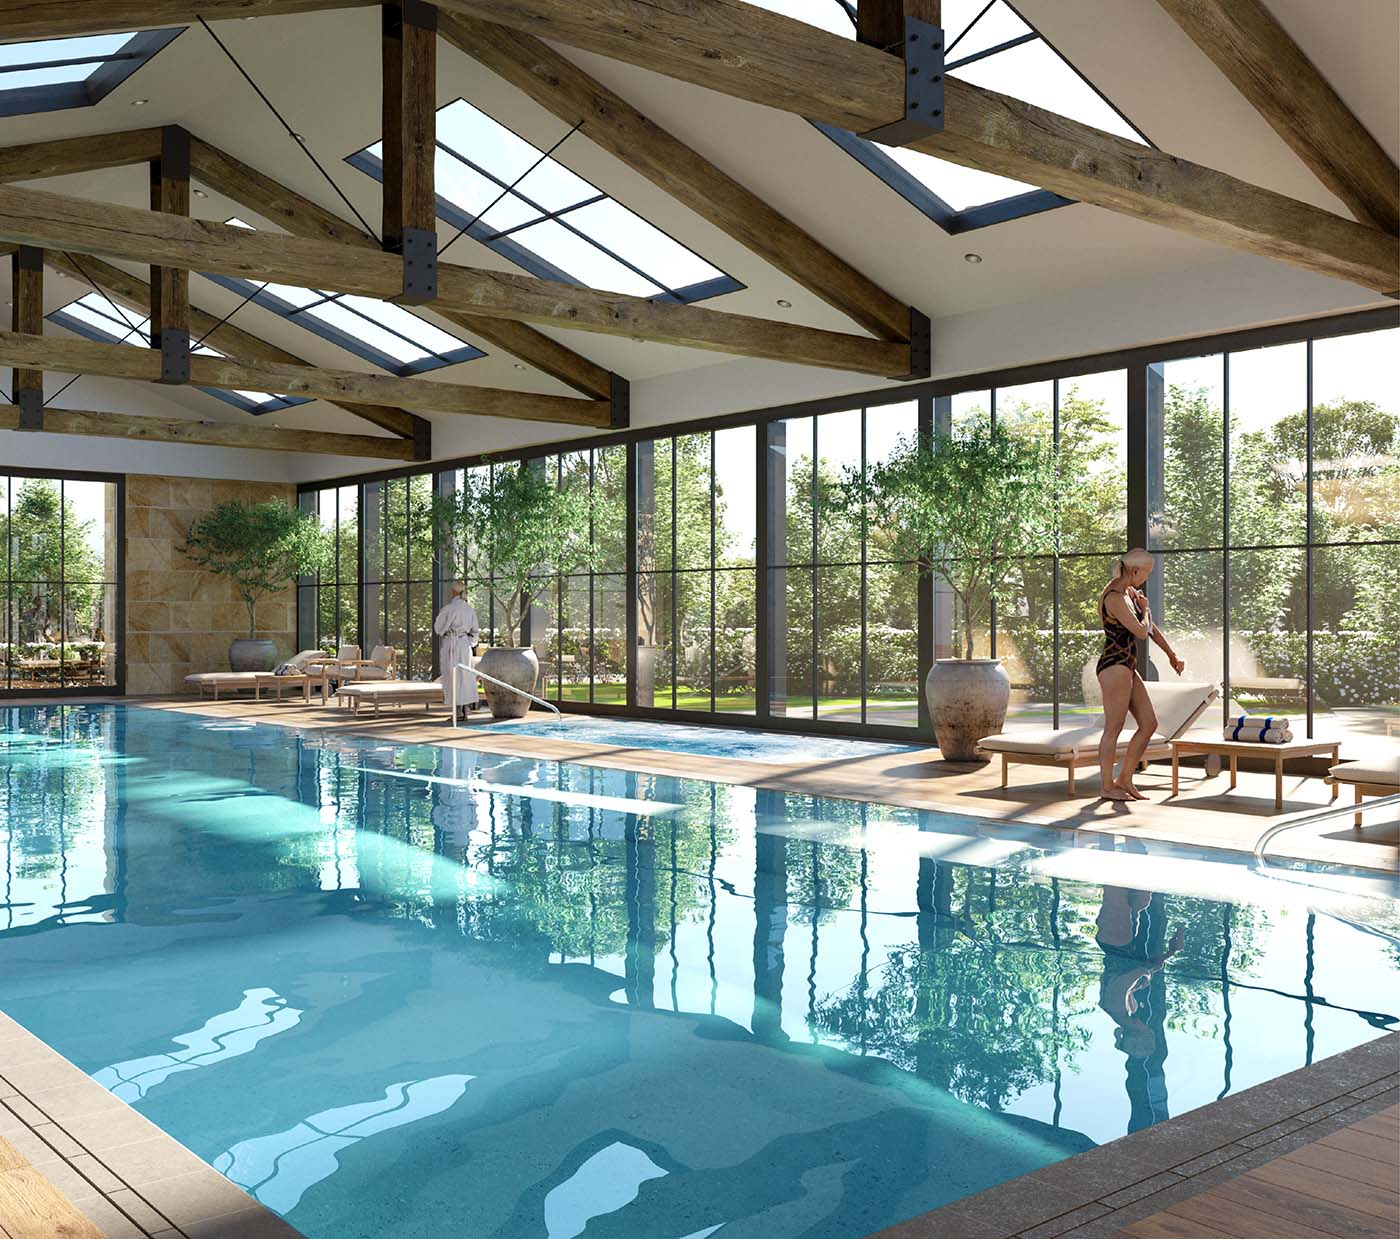 Swimming pool area of a retirement village with glass walls and woman going out of the pool.